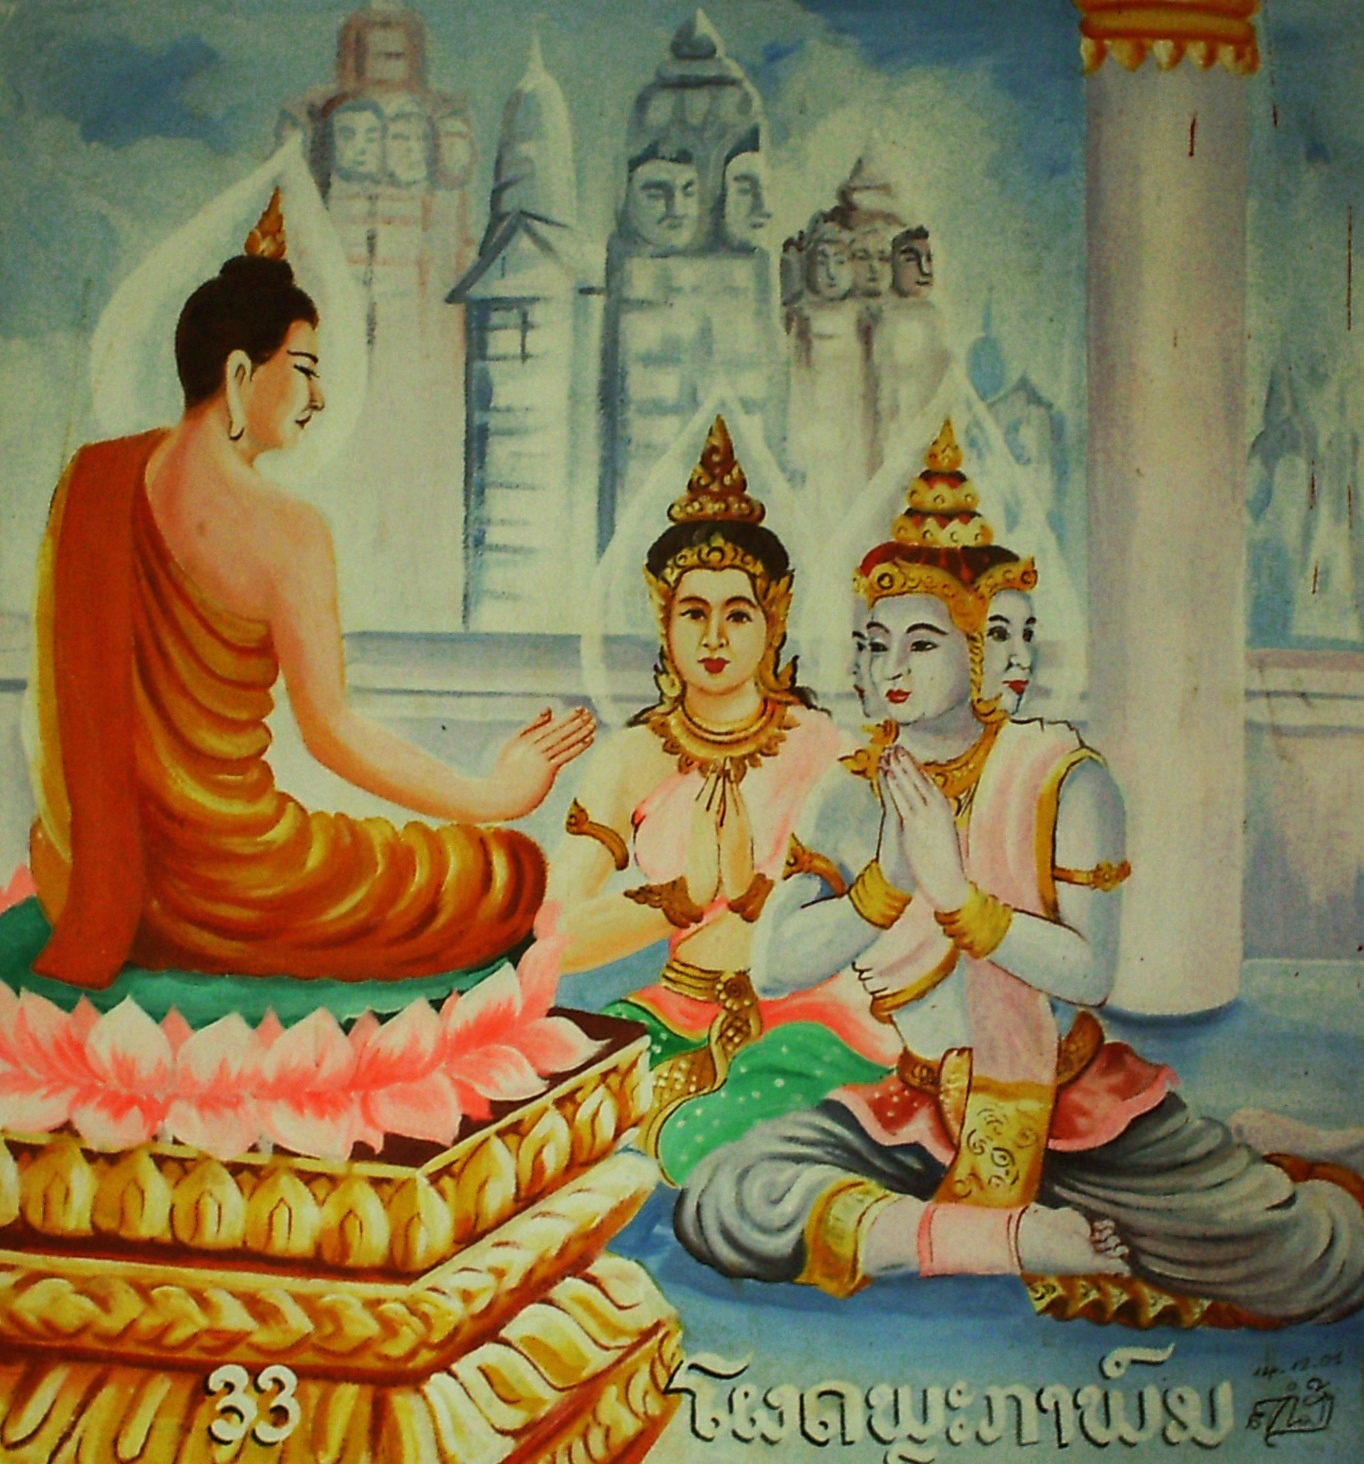 a history of buddhism in a hindu environment in india